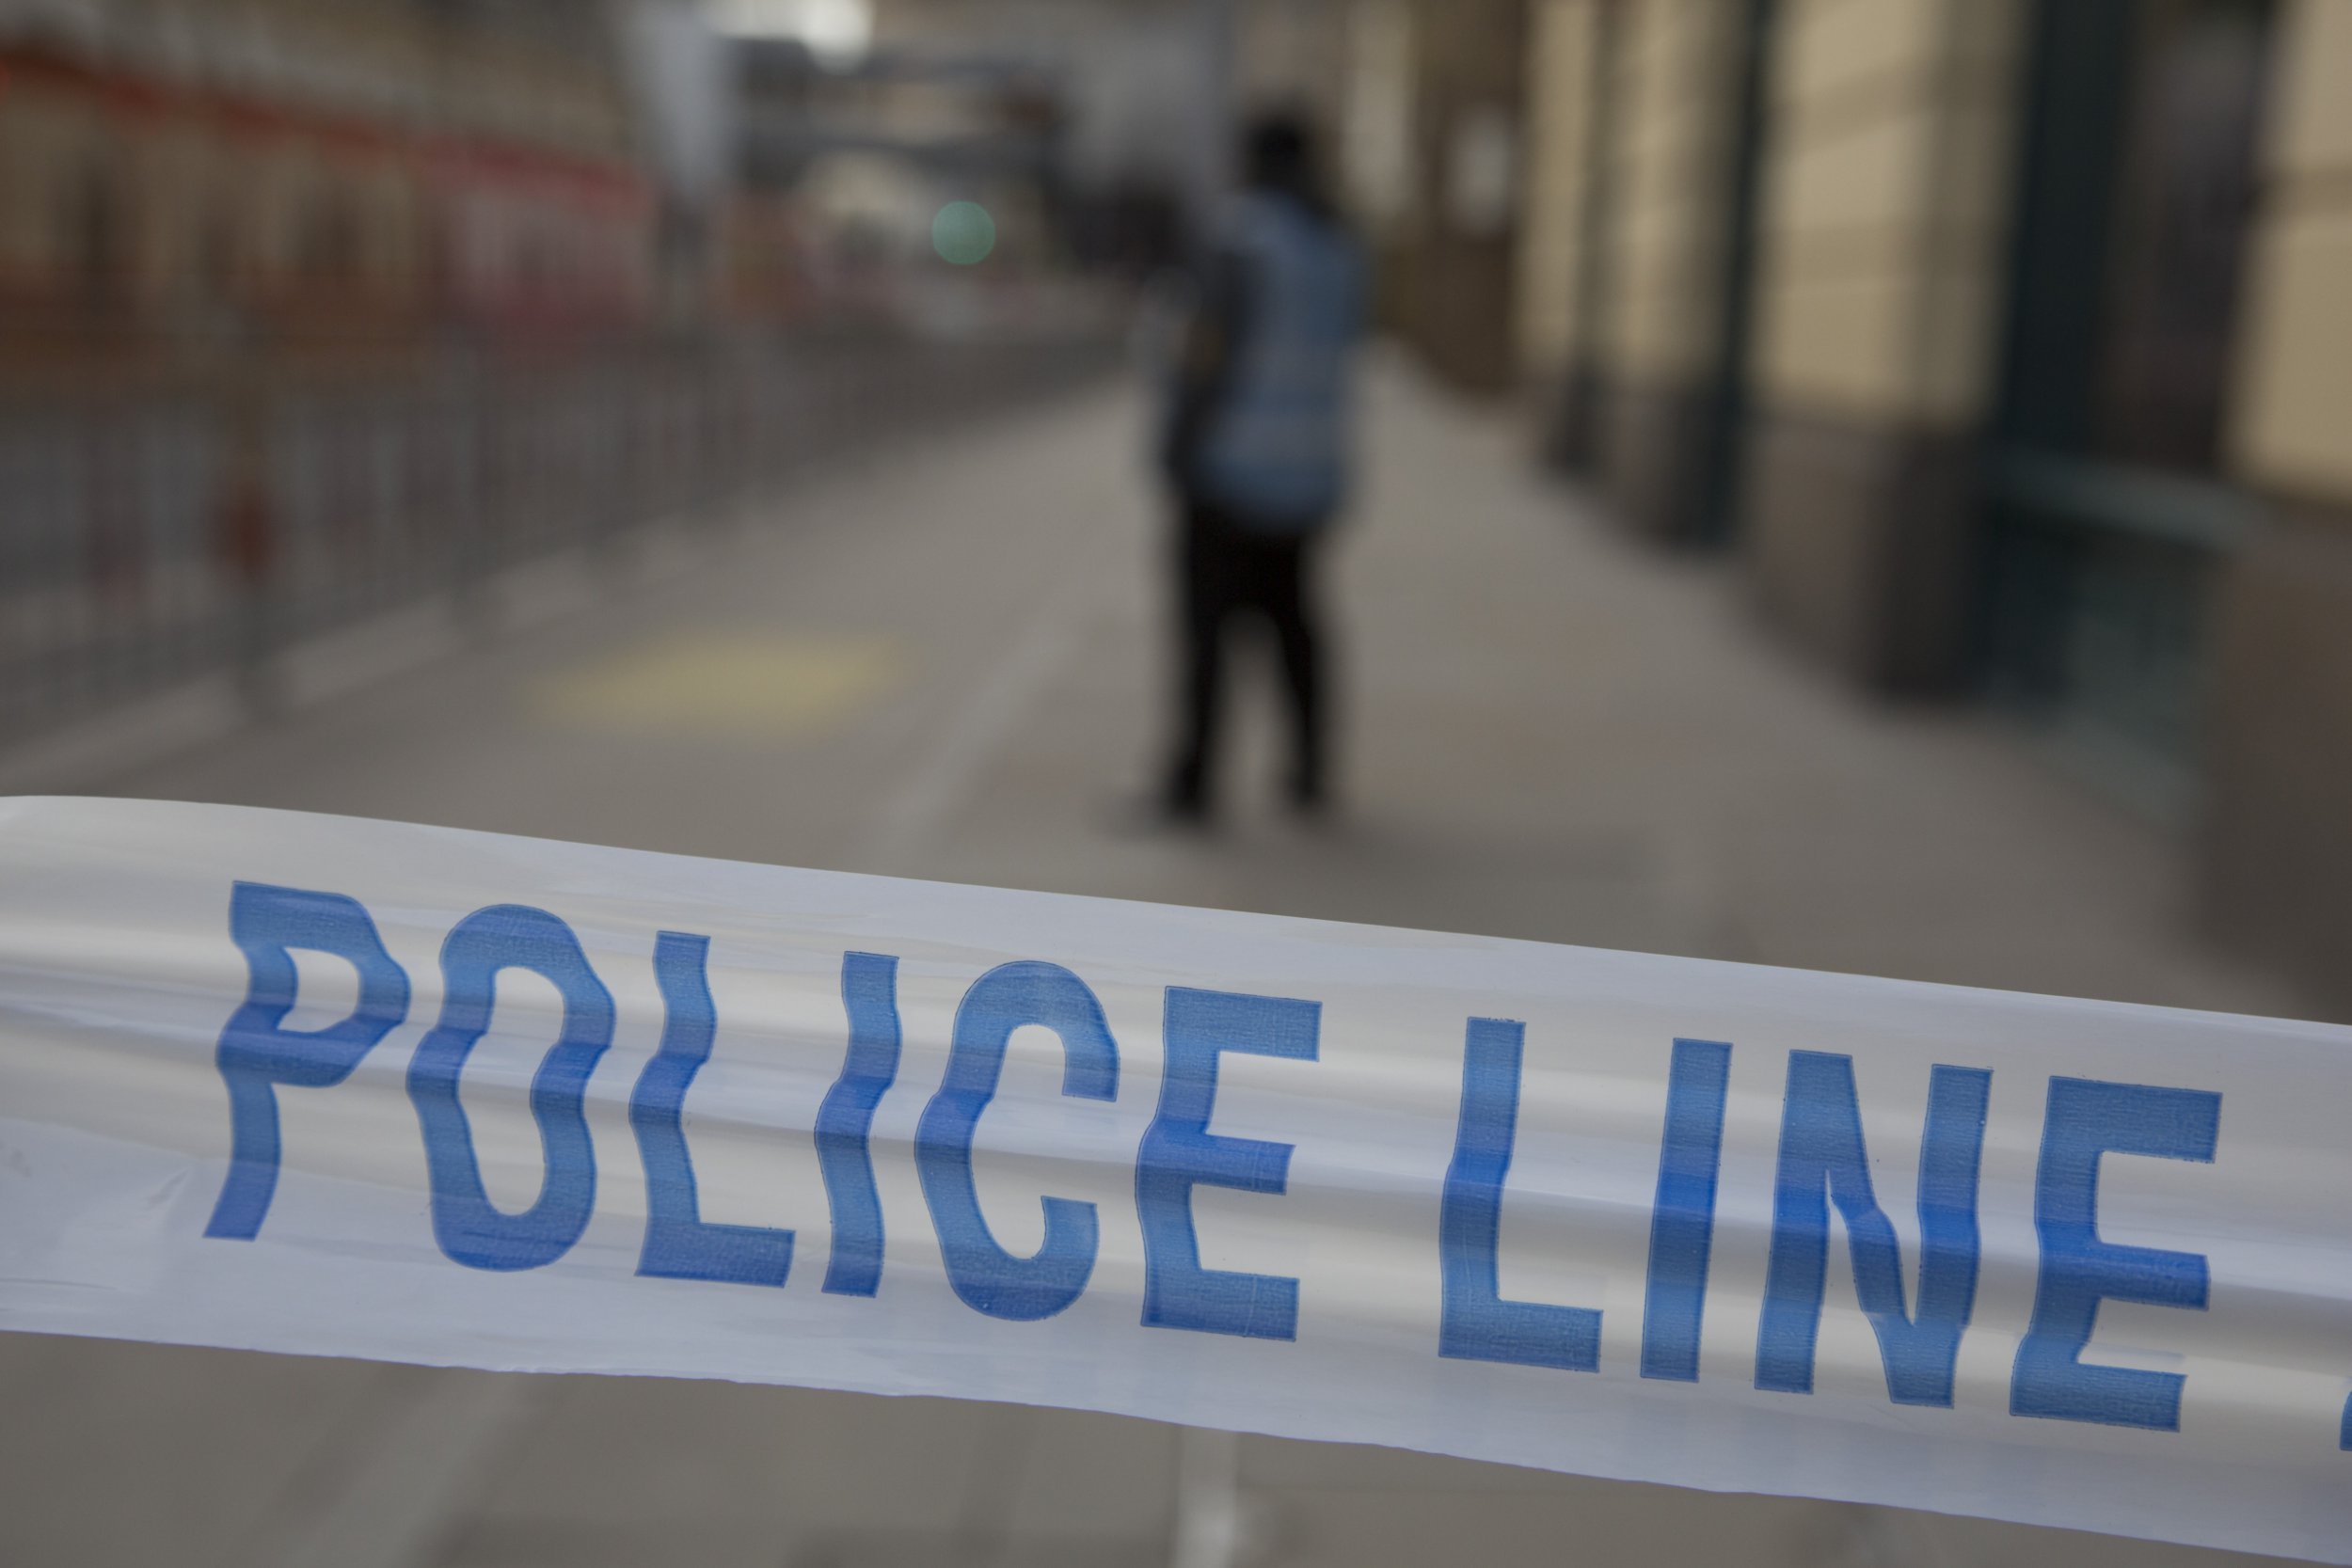 """London Bridge Station was evacuated due to an abandoned vehicle on 7th March 2017, in London, United Kingdom. The area was cordoned off by police leaving hundreds of people beyond the??police cordon. The vehicle had been deemed """"suspicious"""" by the Metropolitan Police Service, and so the entire area was off limits while the emergency services and bomb squad dealt with the issue. (photo by Mike Kemp/In Pictures via Getty Images)"""